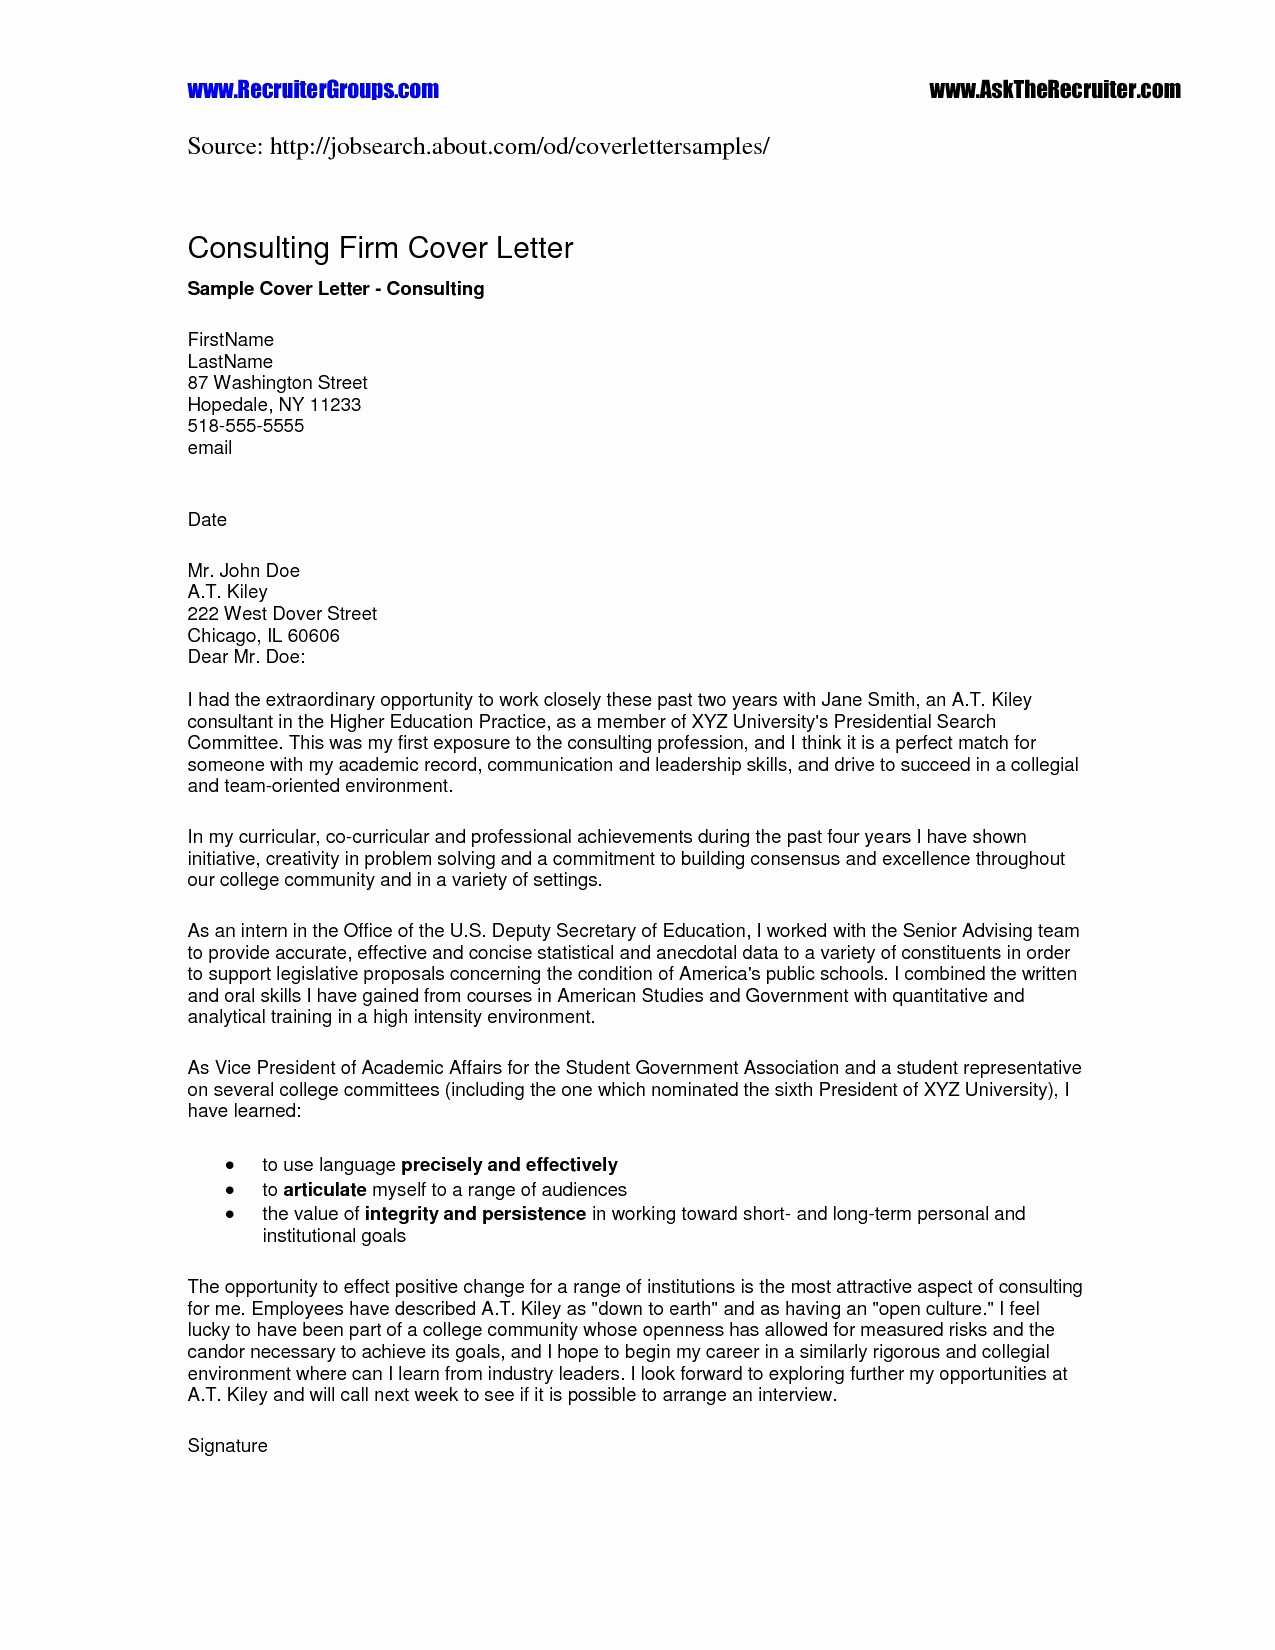 Statement Of Service Letter Template Examples | Letter ...